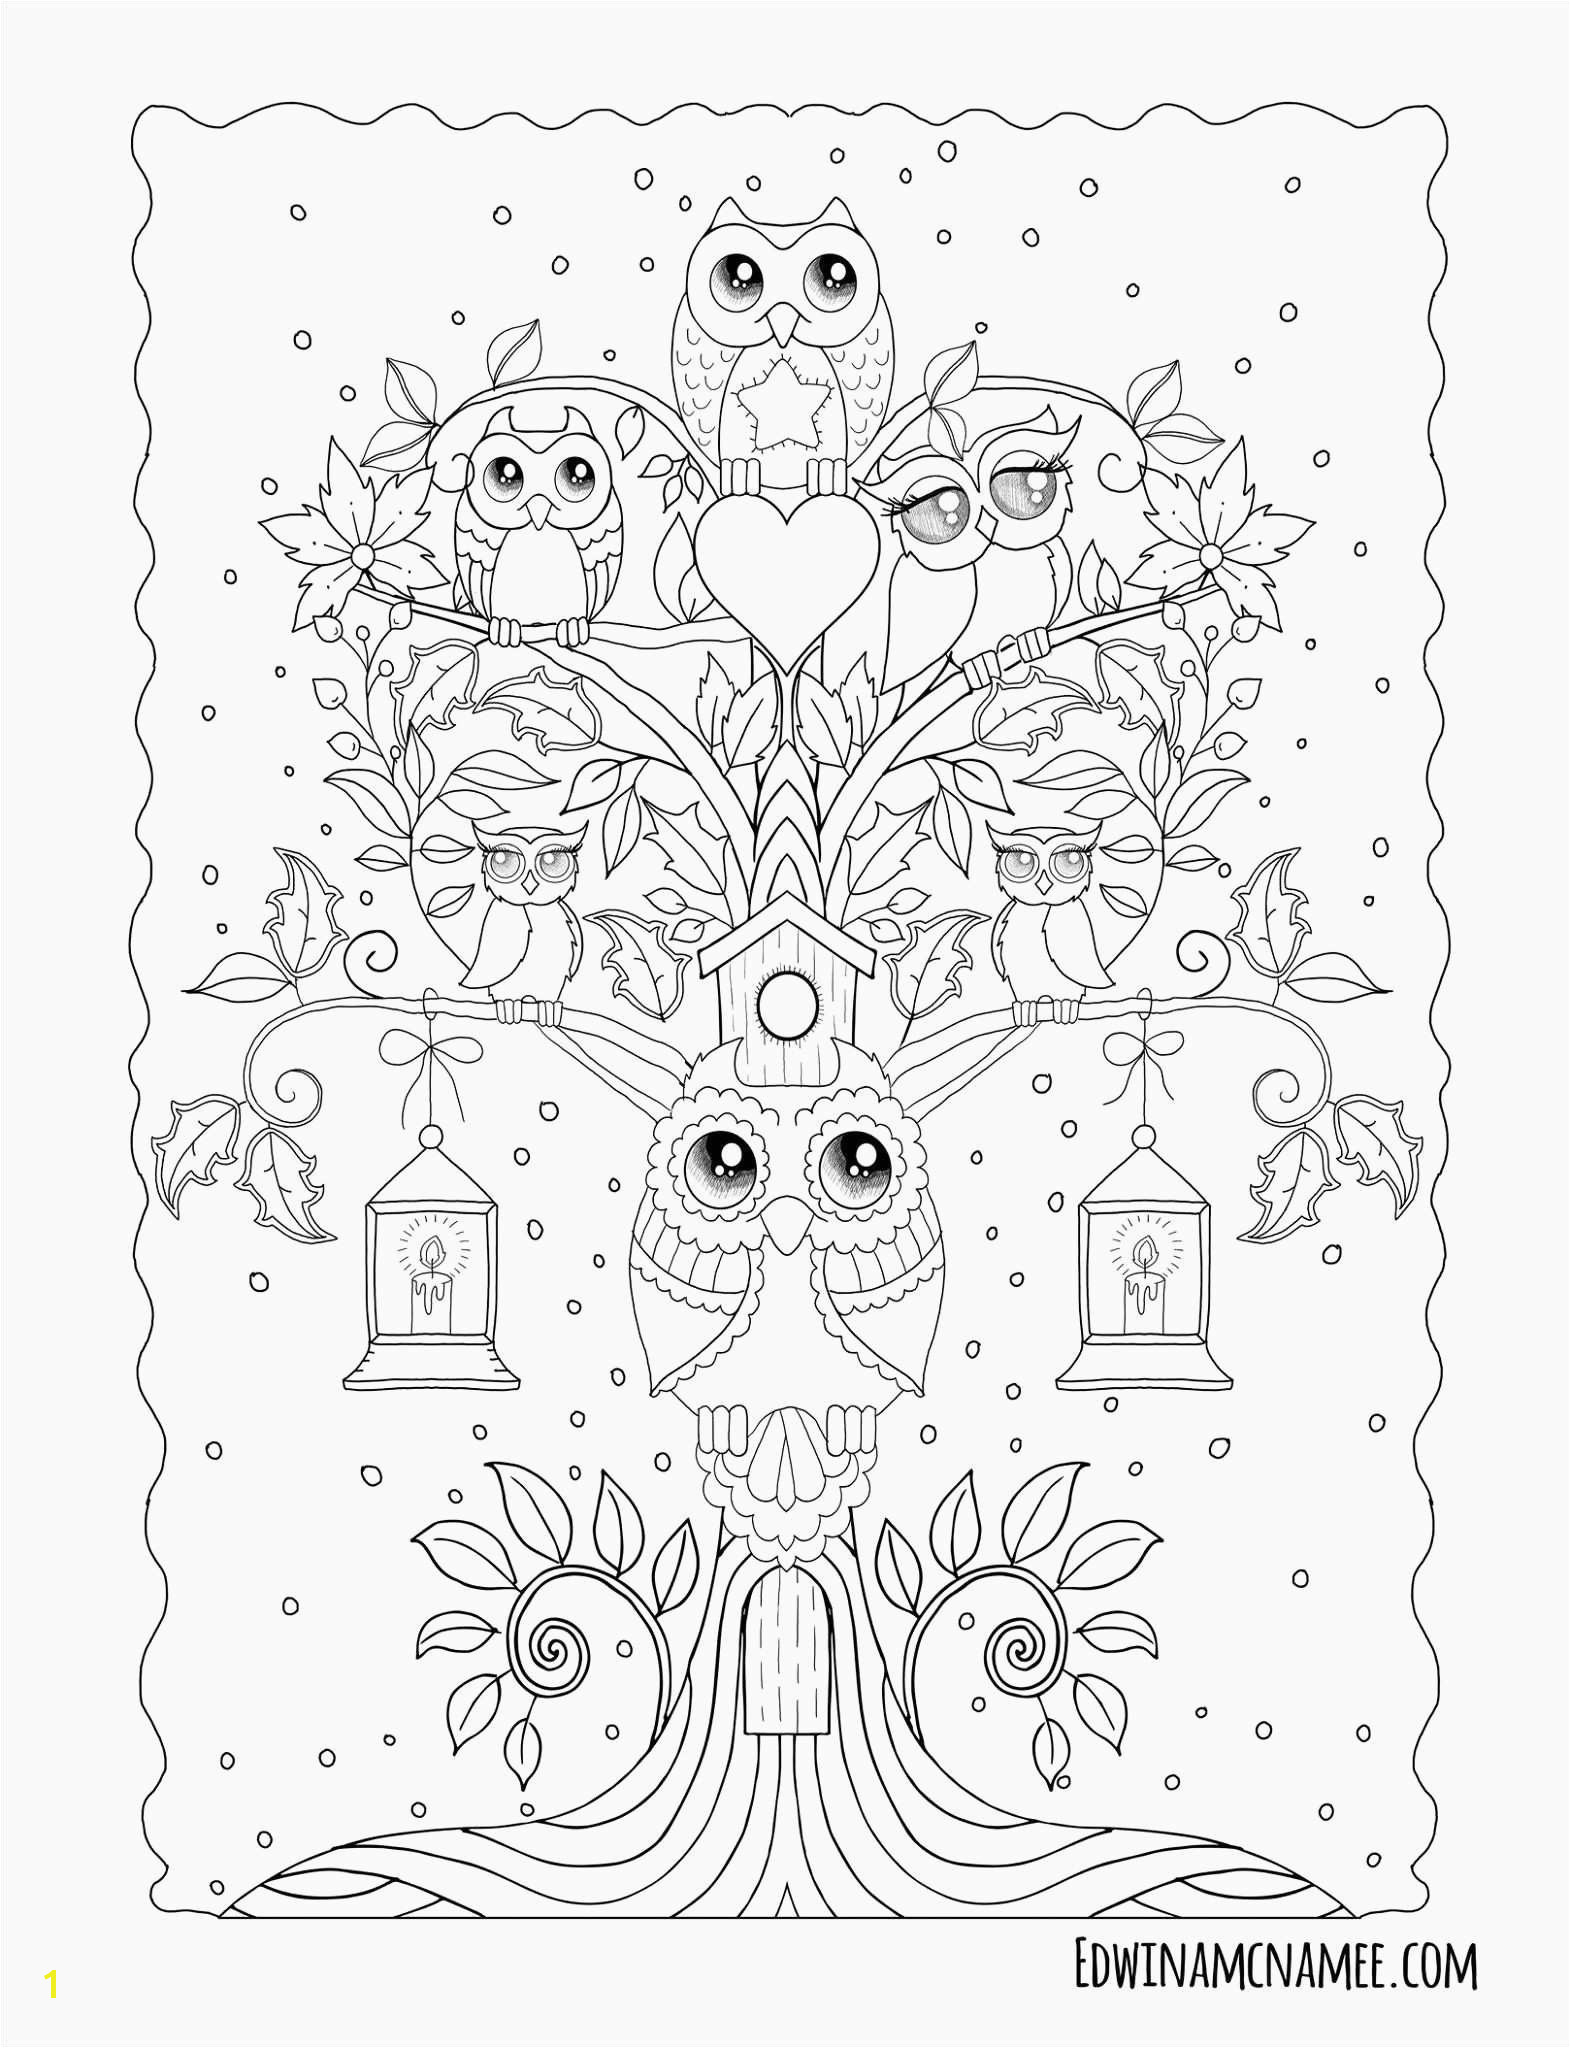 - Paisley Coloring Pages Advanced Coloring Pages Of Animals Paisley